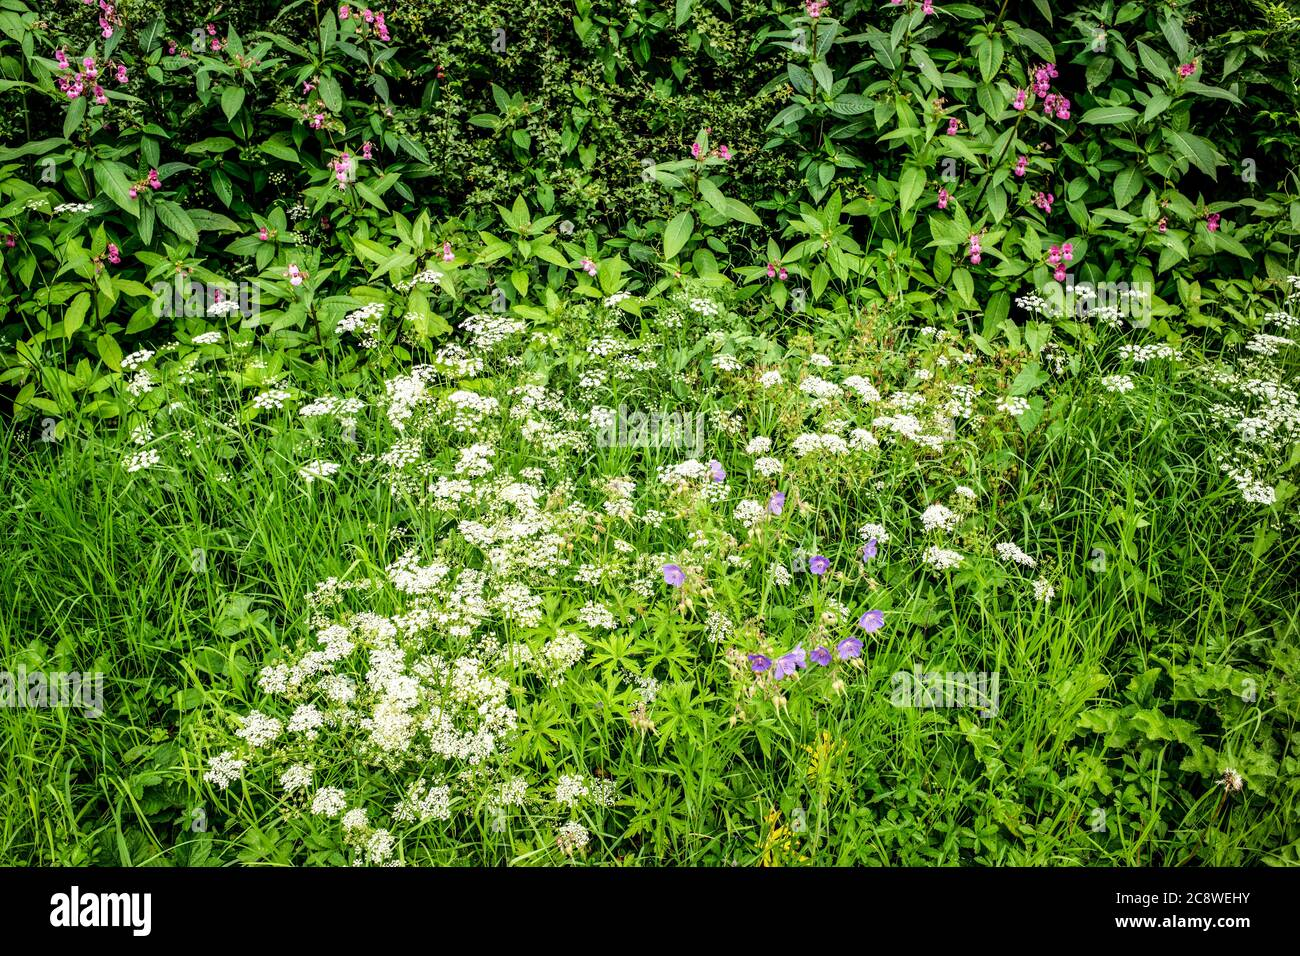 Roadside Cranes-bill, Hedge-parsley and Himalayan balsam, Vale of York, Yorkshire, UK Stock Photo